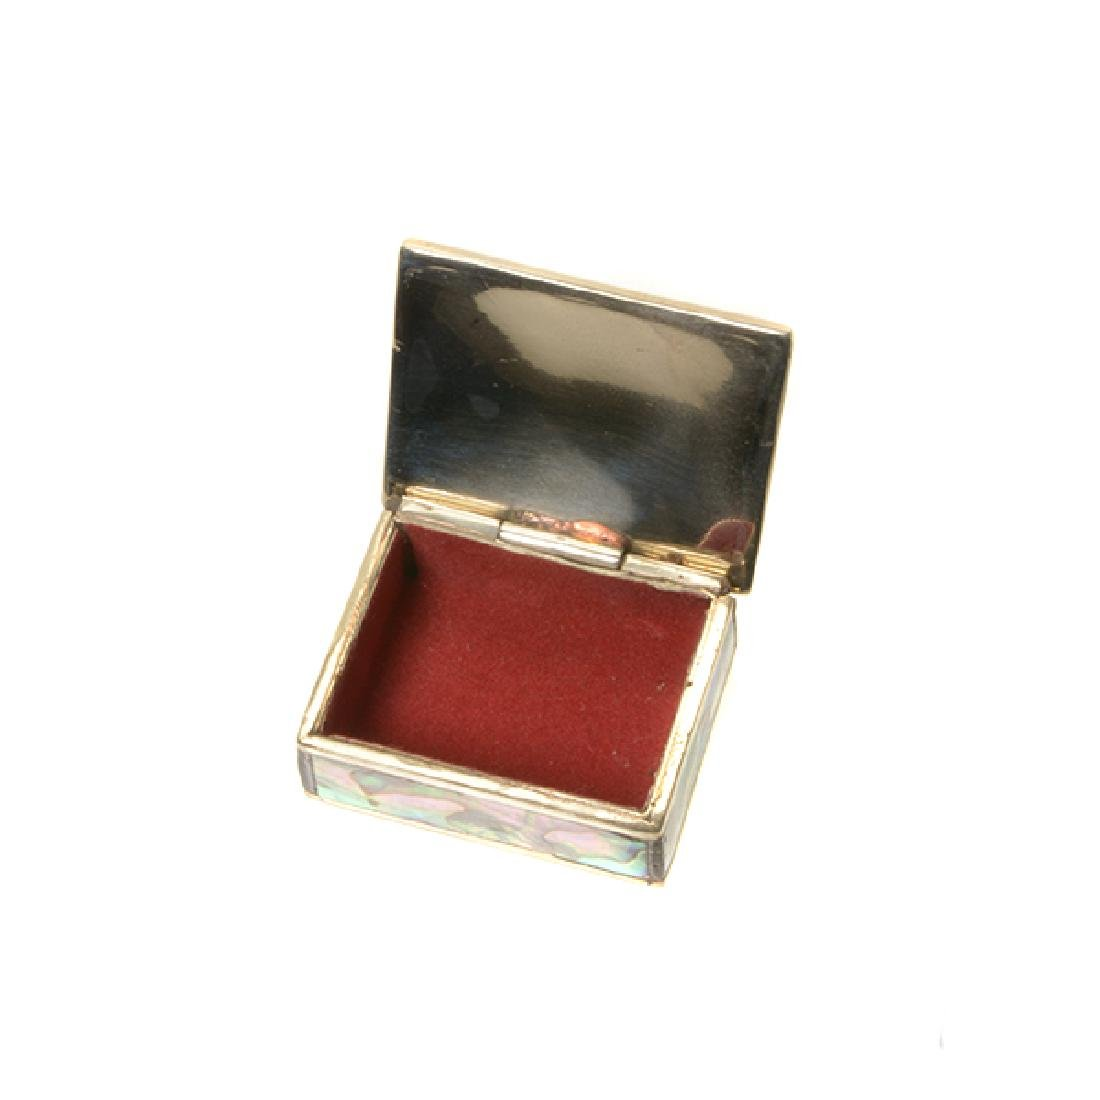 Collection of Porcelain Enameled Boxes - 9